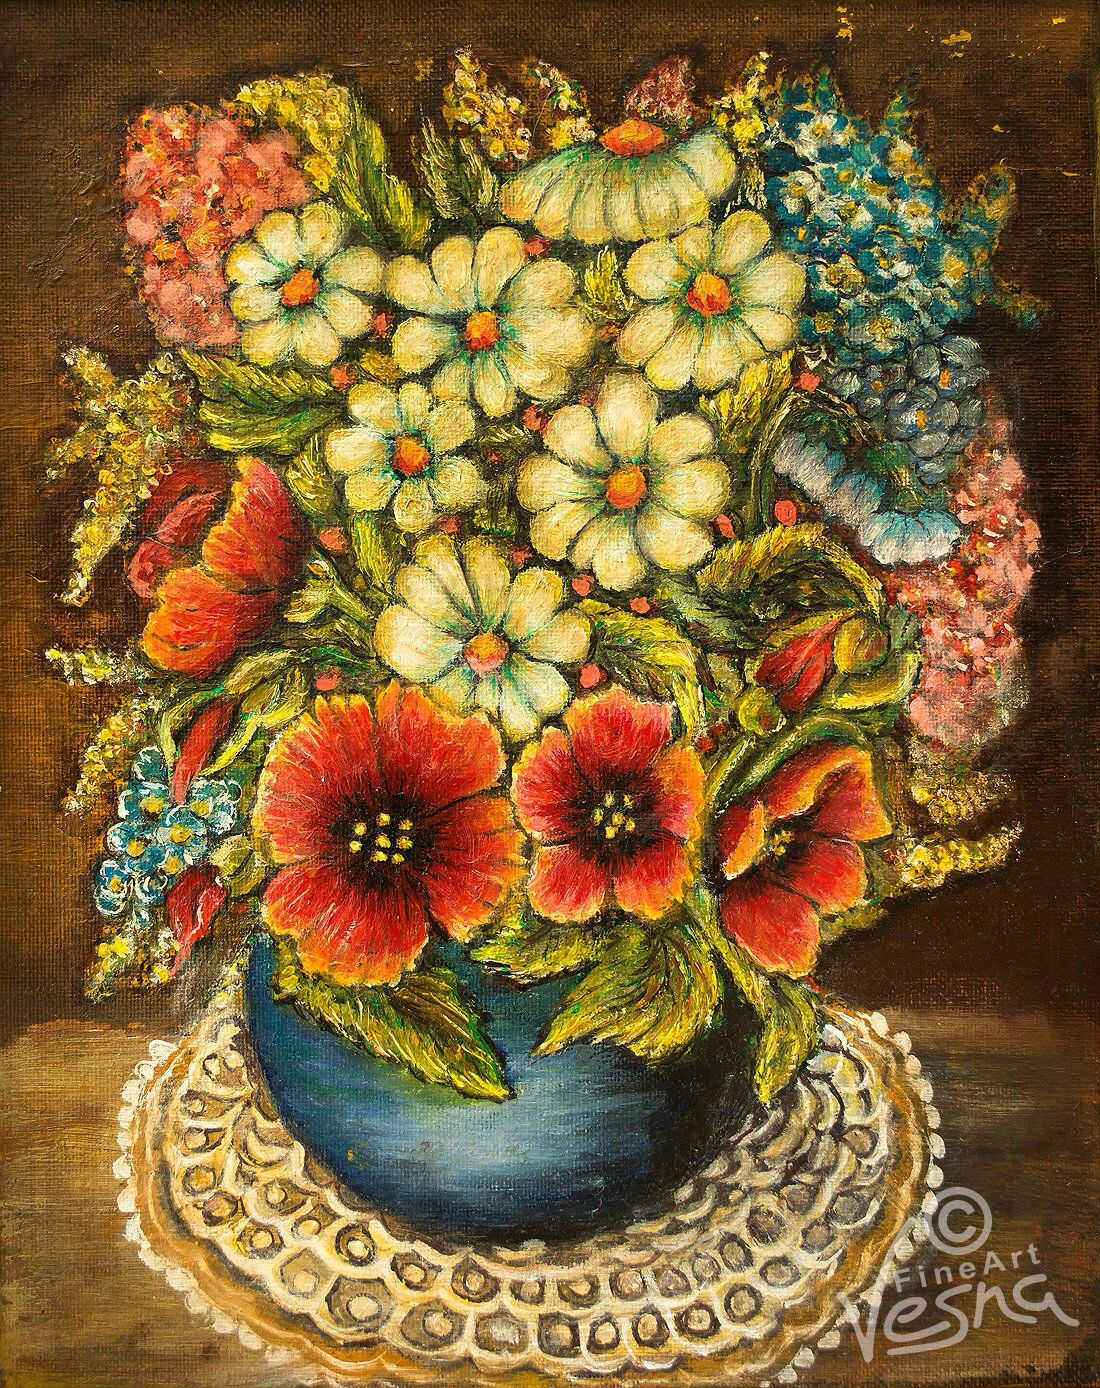 Oil Painting, Red Poppies and daisies, in blue vase, Digital images ...